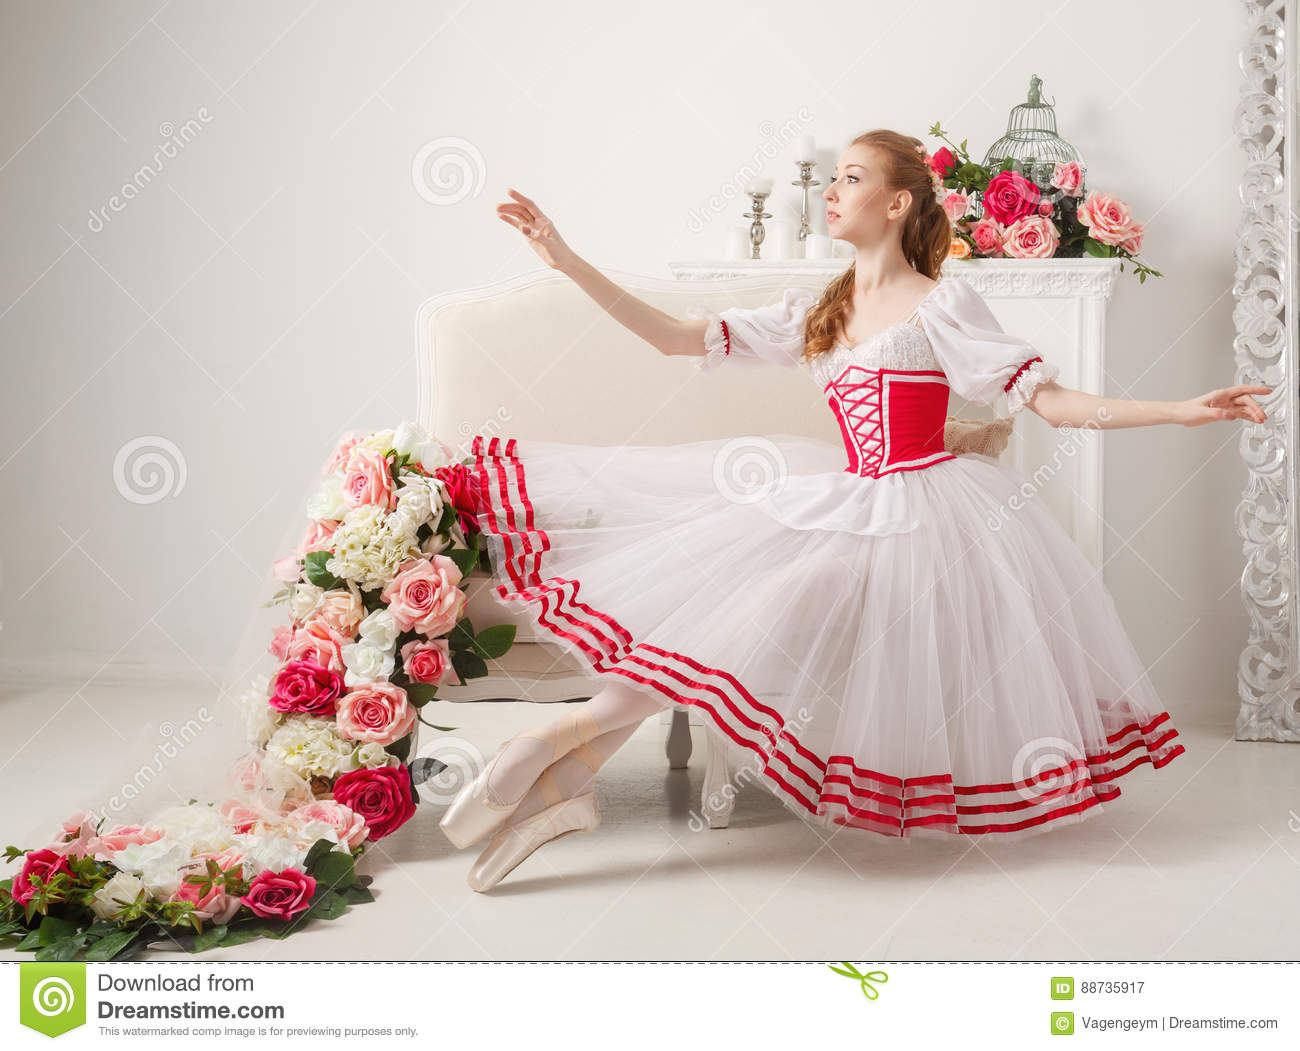 9bb21915a802 Cute ballerina in stage costume next to bouquets of spring flowers. Retro  dress.